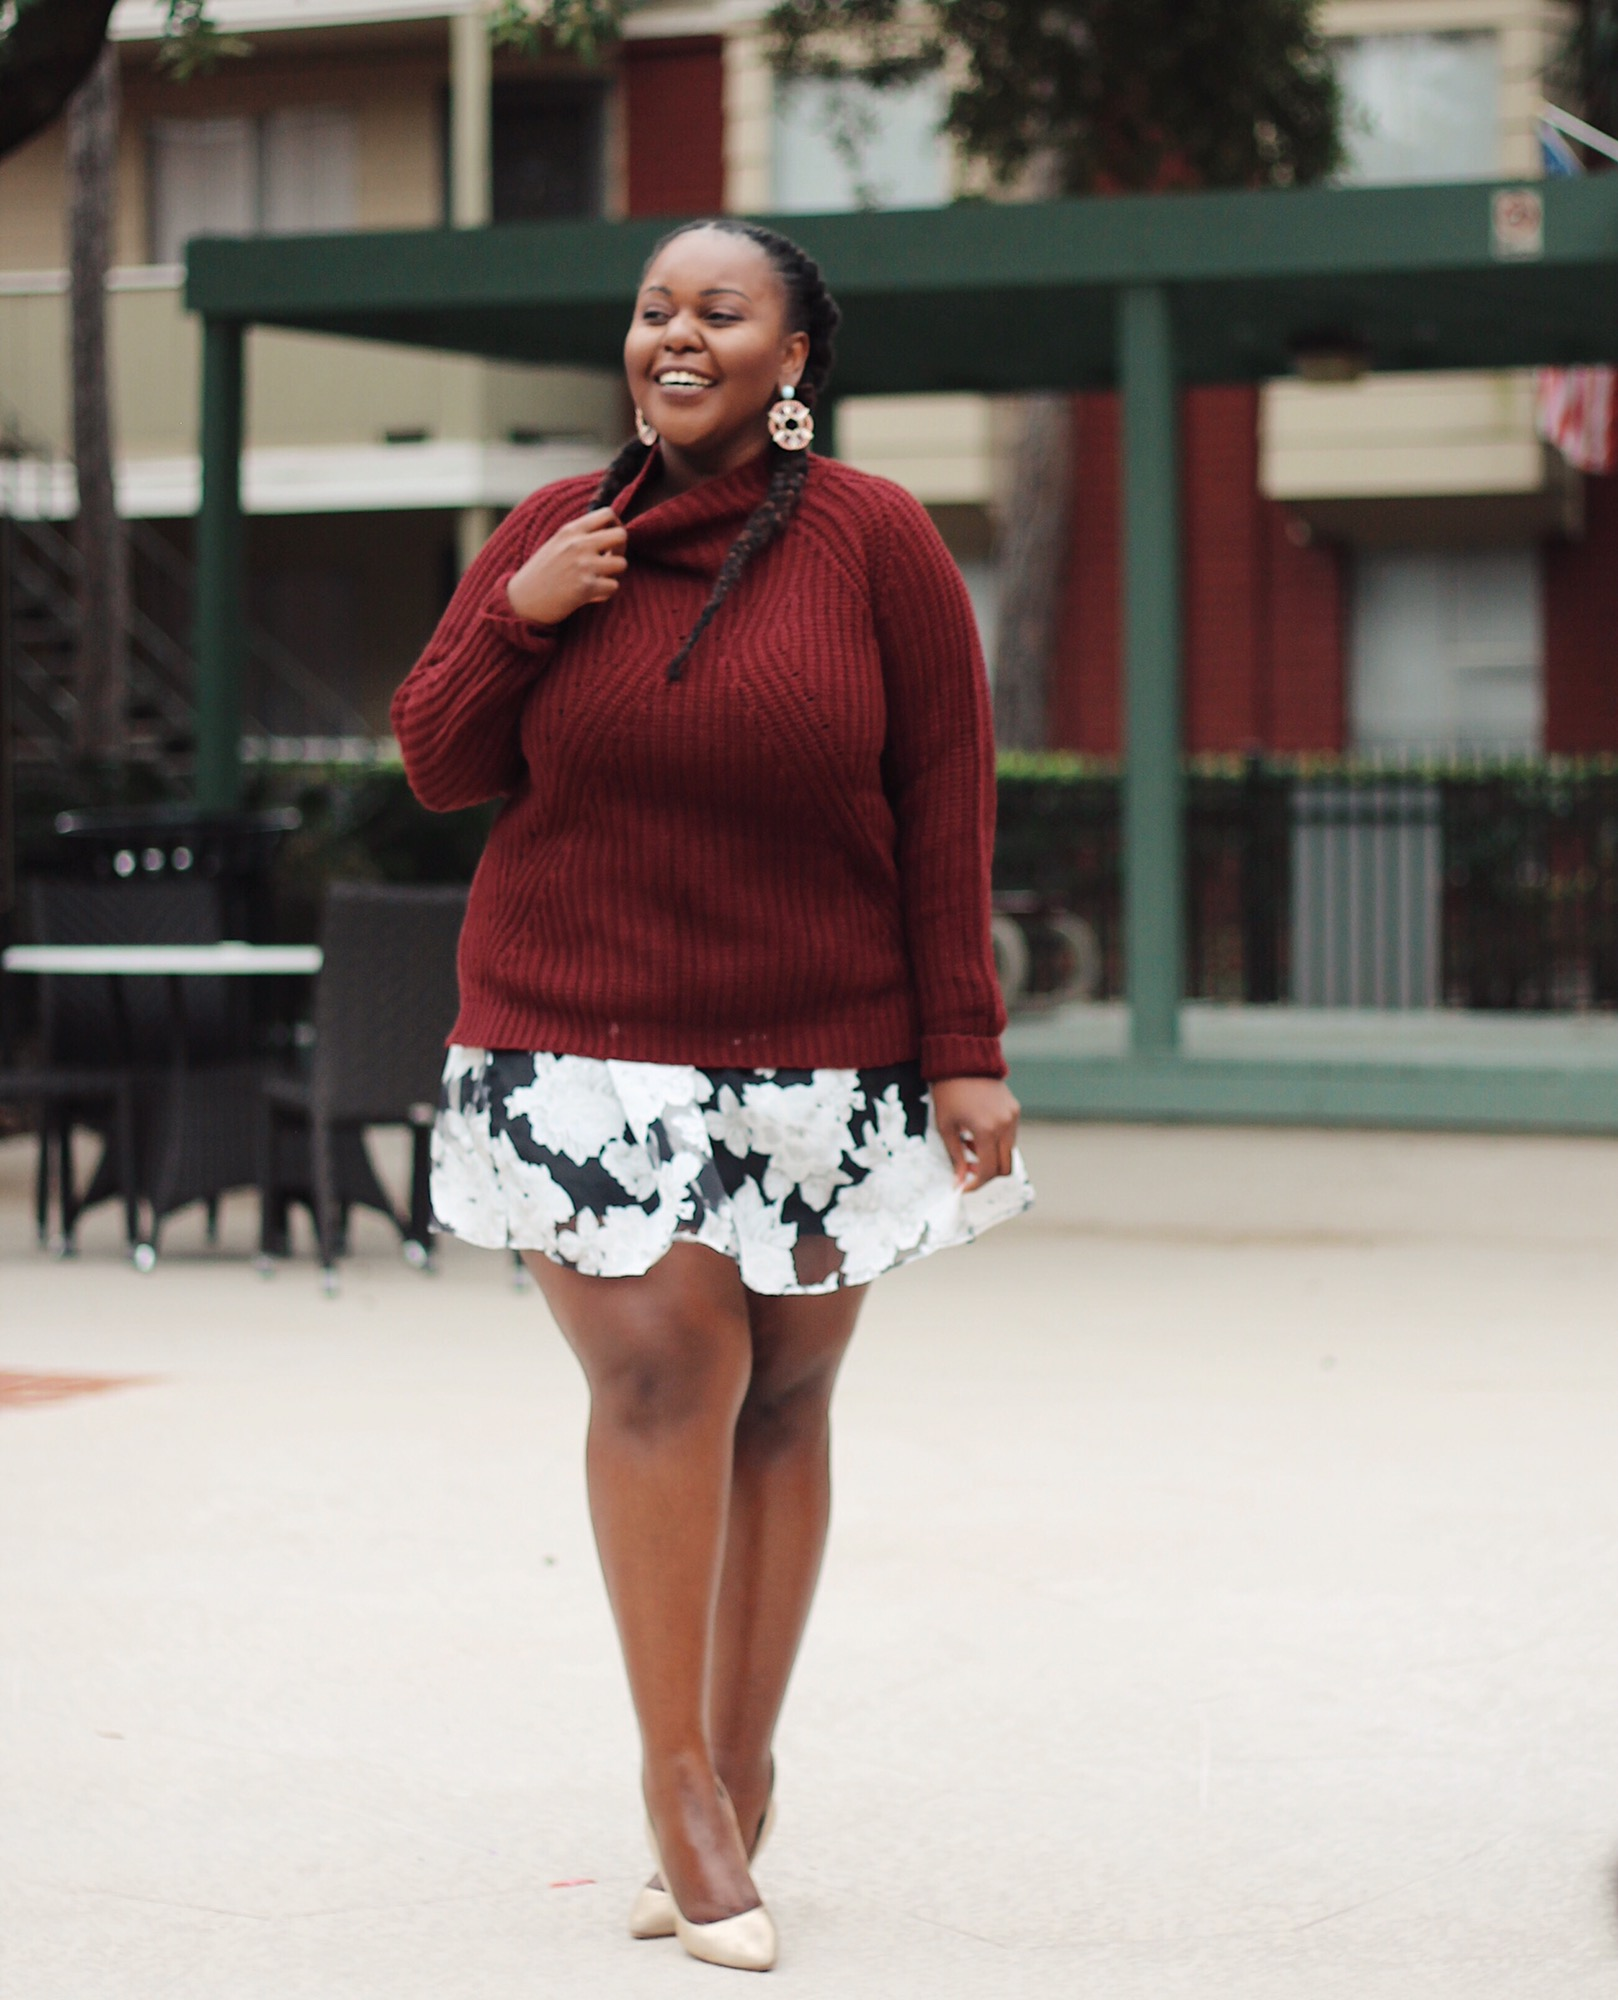 asos curve bloggers, nordstrom rack dresses, beautiful curvy girls, curvy style dark skin fashion blogger curvy style blogger, dark skin beauty blogger, dark skin blogger, houston blogger, inspiration for 2016, inspiring bloggers and blogs, new years resolutions, plus size blogger, quotes for 2016, relationship advice blogs, rules to live by in the new year, texas blogger, travel blogger, ugandan blogger, ugandan fashionista, ugandan style blogger, african print ankara skirt styles, where to get african print clothes in America and uk, exposure african crafts in kampala uganda, kyaligonza kampala, rebdolls, MIA shoes, DSW, Lastcall bag, yellow and maroon fashion, more issues than vogue clothes top, zara, tjmaxx